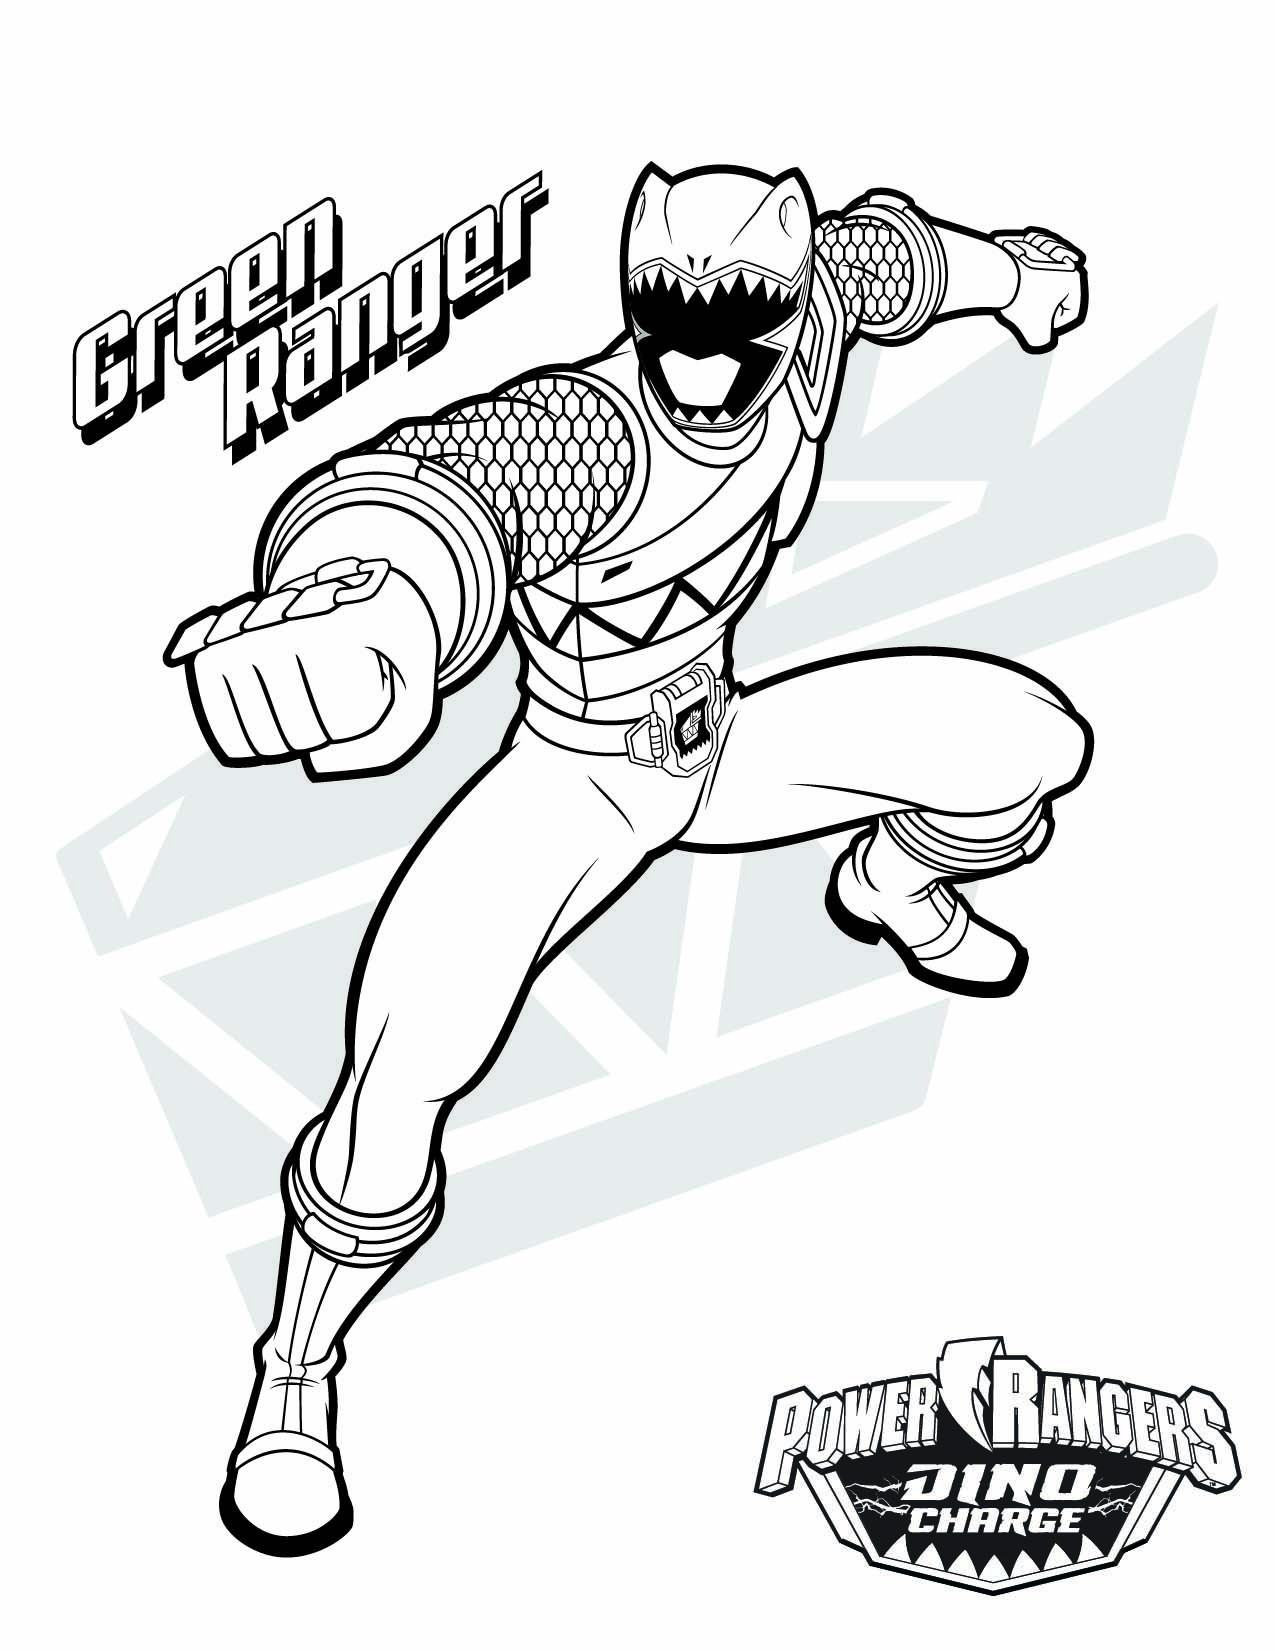 Coloring Pages Of Power Rangers Free Coloring Pages Download | Xsibe ...